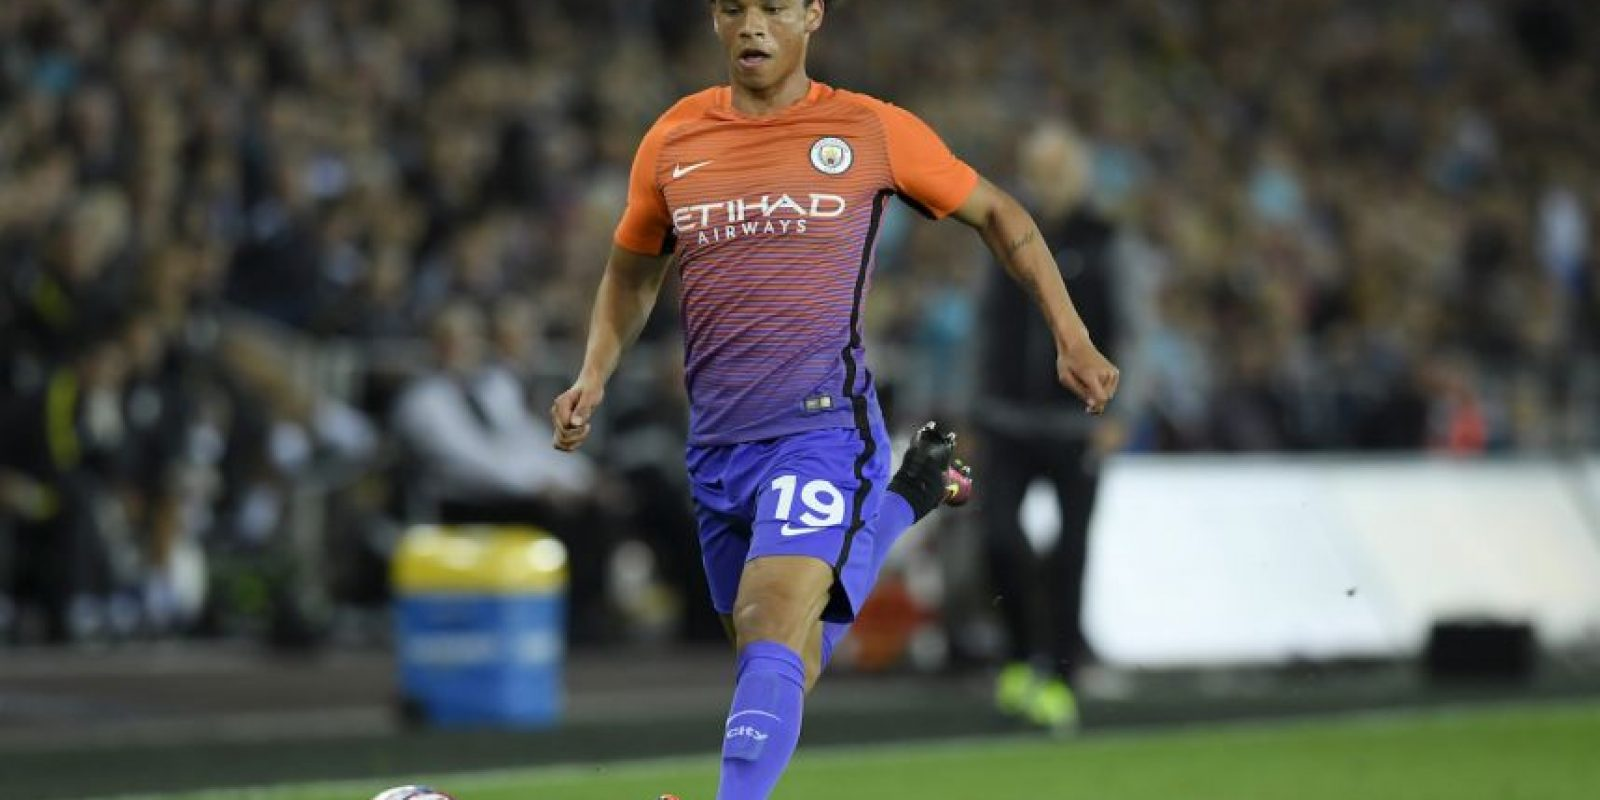 Getty Images Foto: 9.-Leroy Sané – 19 años (Manchester City)